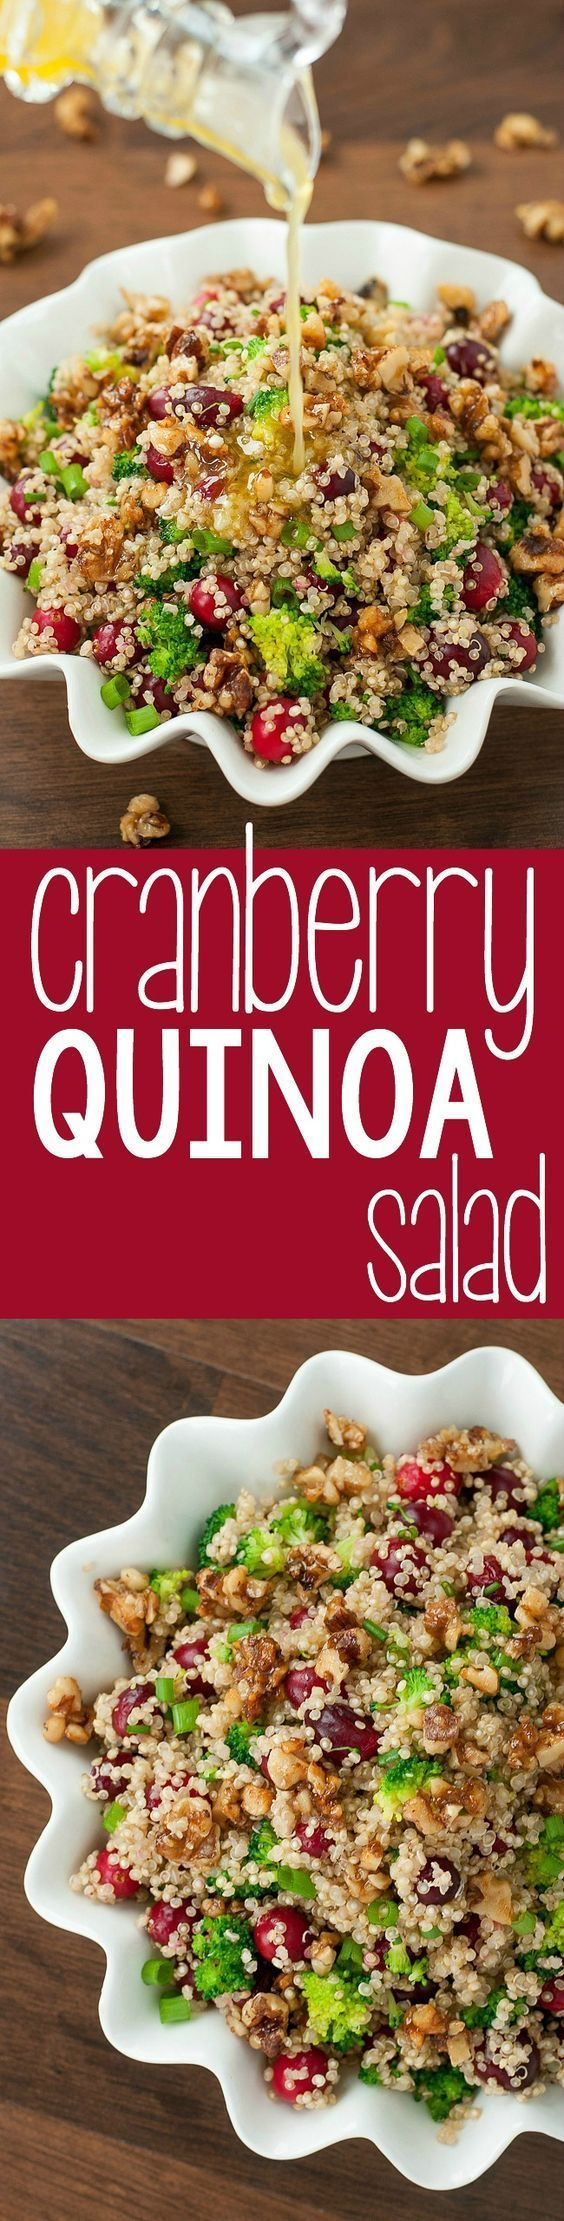 Cranberry Quinoa Salad with Candied Walnuts :: we're in love with this healthy gluten-free salad! (use fresh cranberries in the winter and dried cranberries in the Summer!)